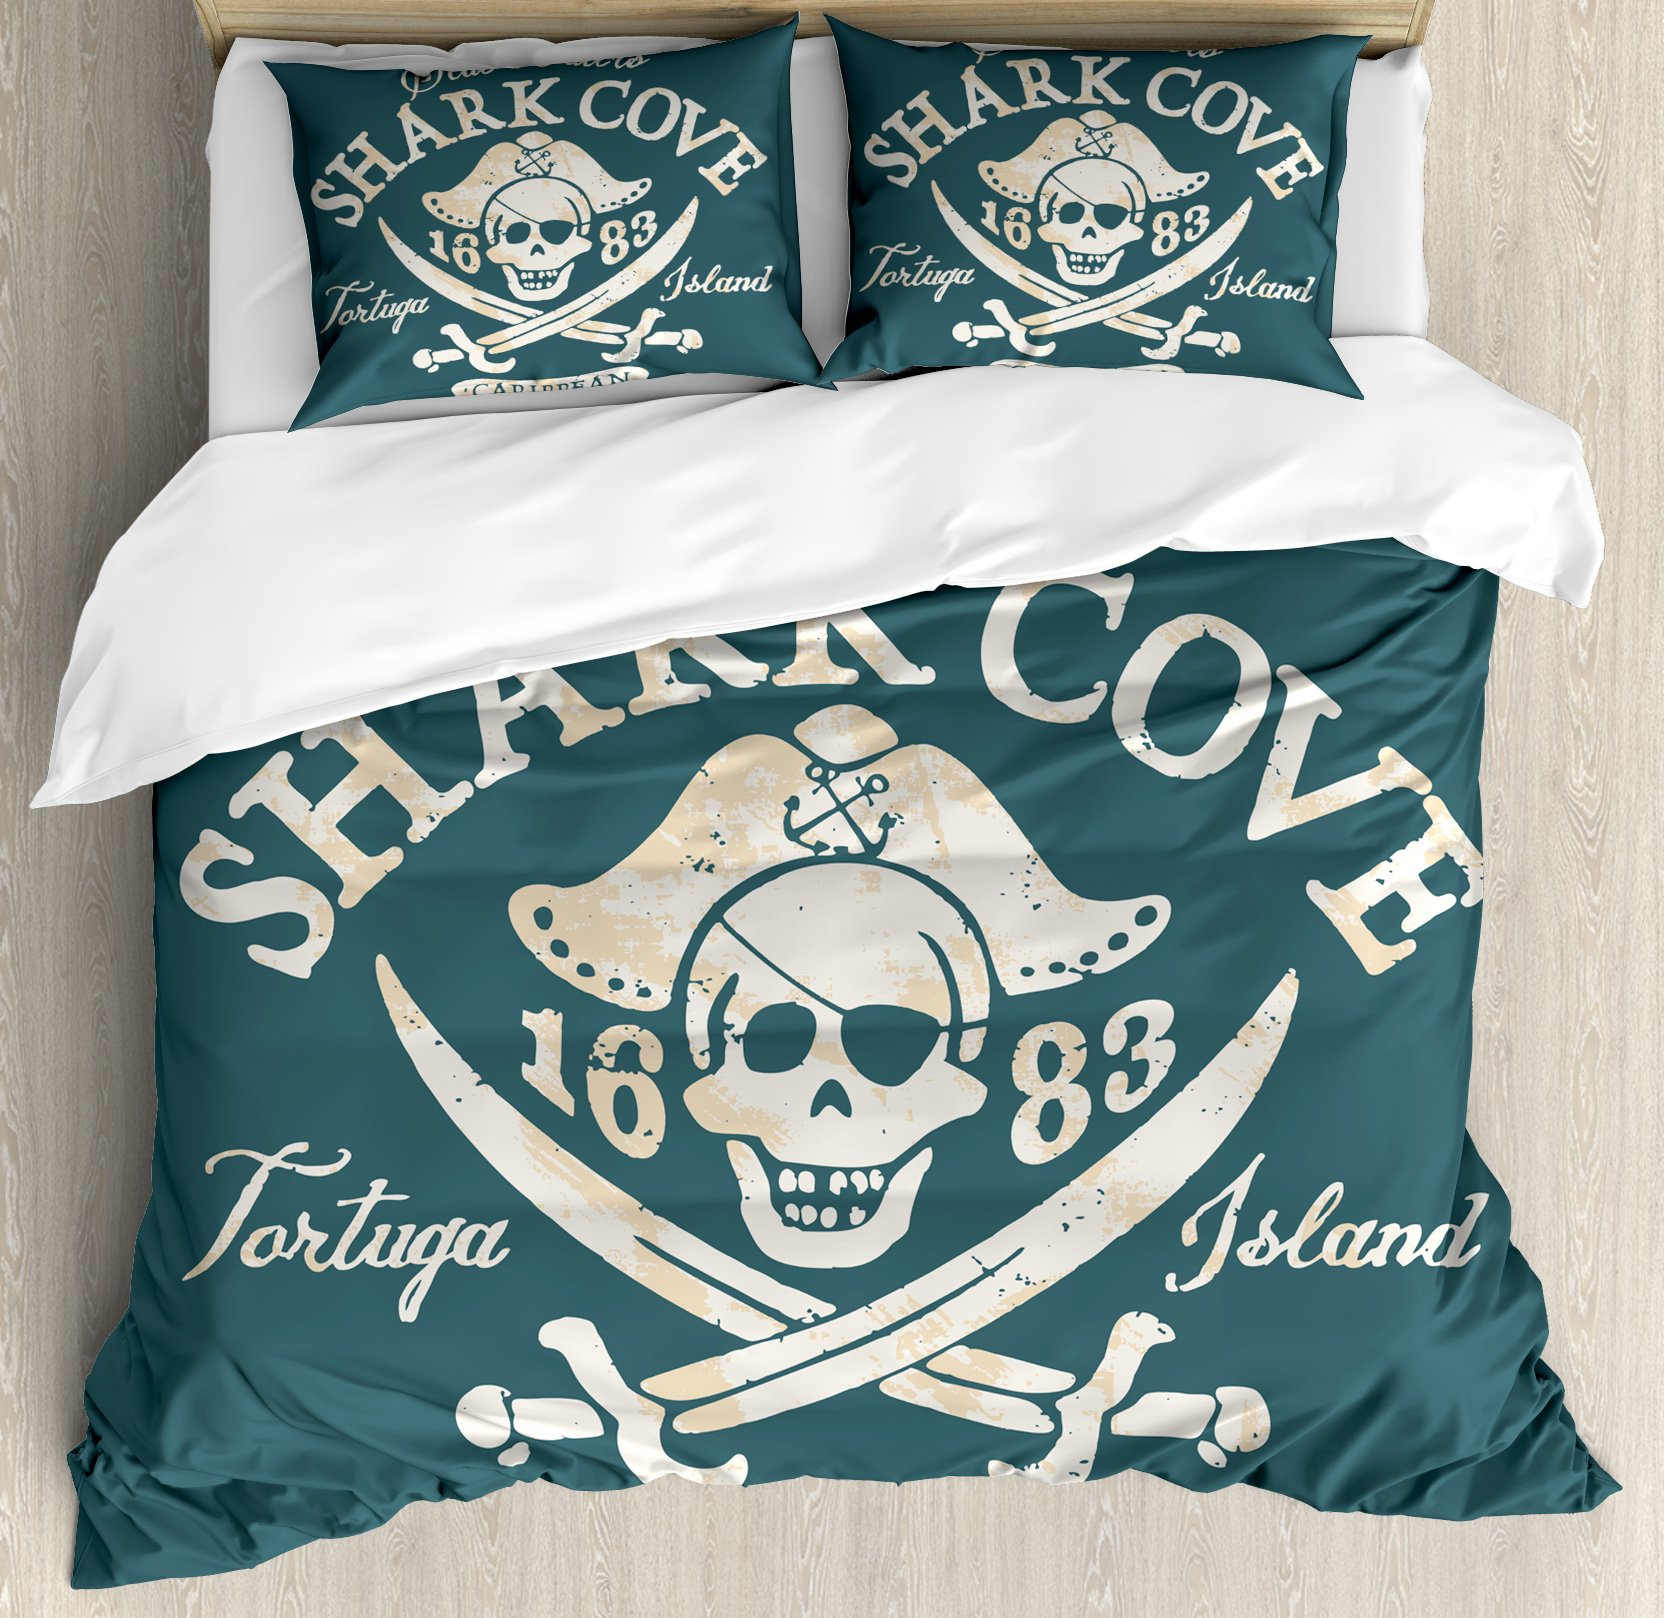 Pirate Queen Size Duvet Cover Set by Ambesonne, Shark Cove Tortuga Island Caribbean Waters Retro Jolly Roger, Decorative 3 Piece Bedding Set with 2 Pillow Shams, Slate Blue White Light Mustard